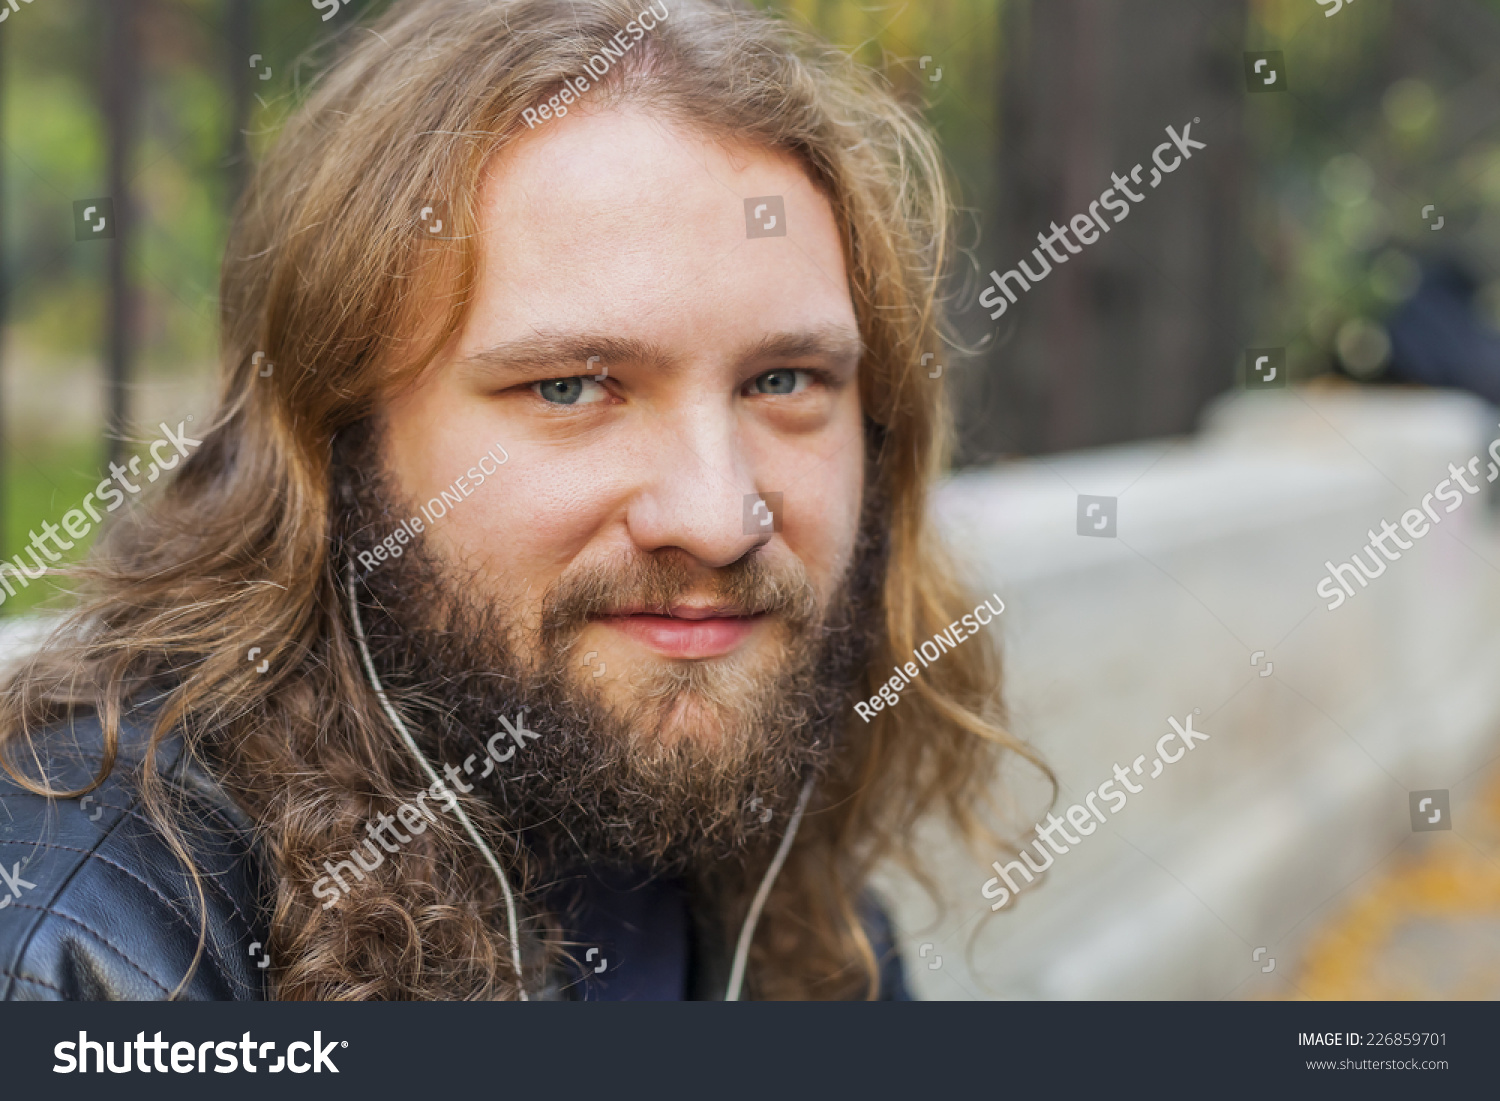 Blond Long Hair And Beard Young Adult Hipster Man Listening Music. Outdoor,  Urban Scene